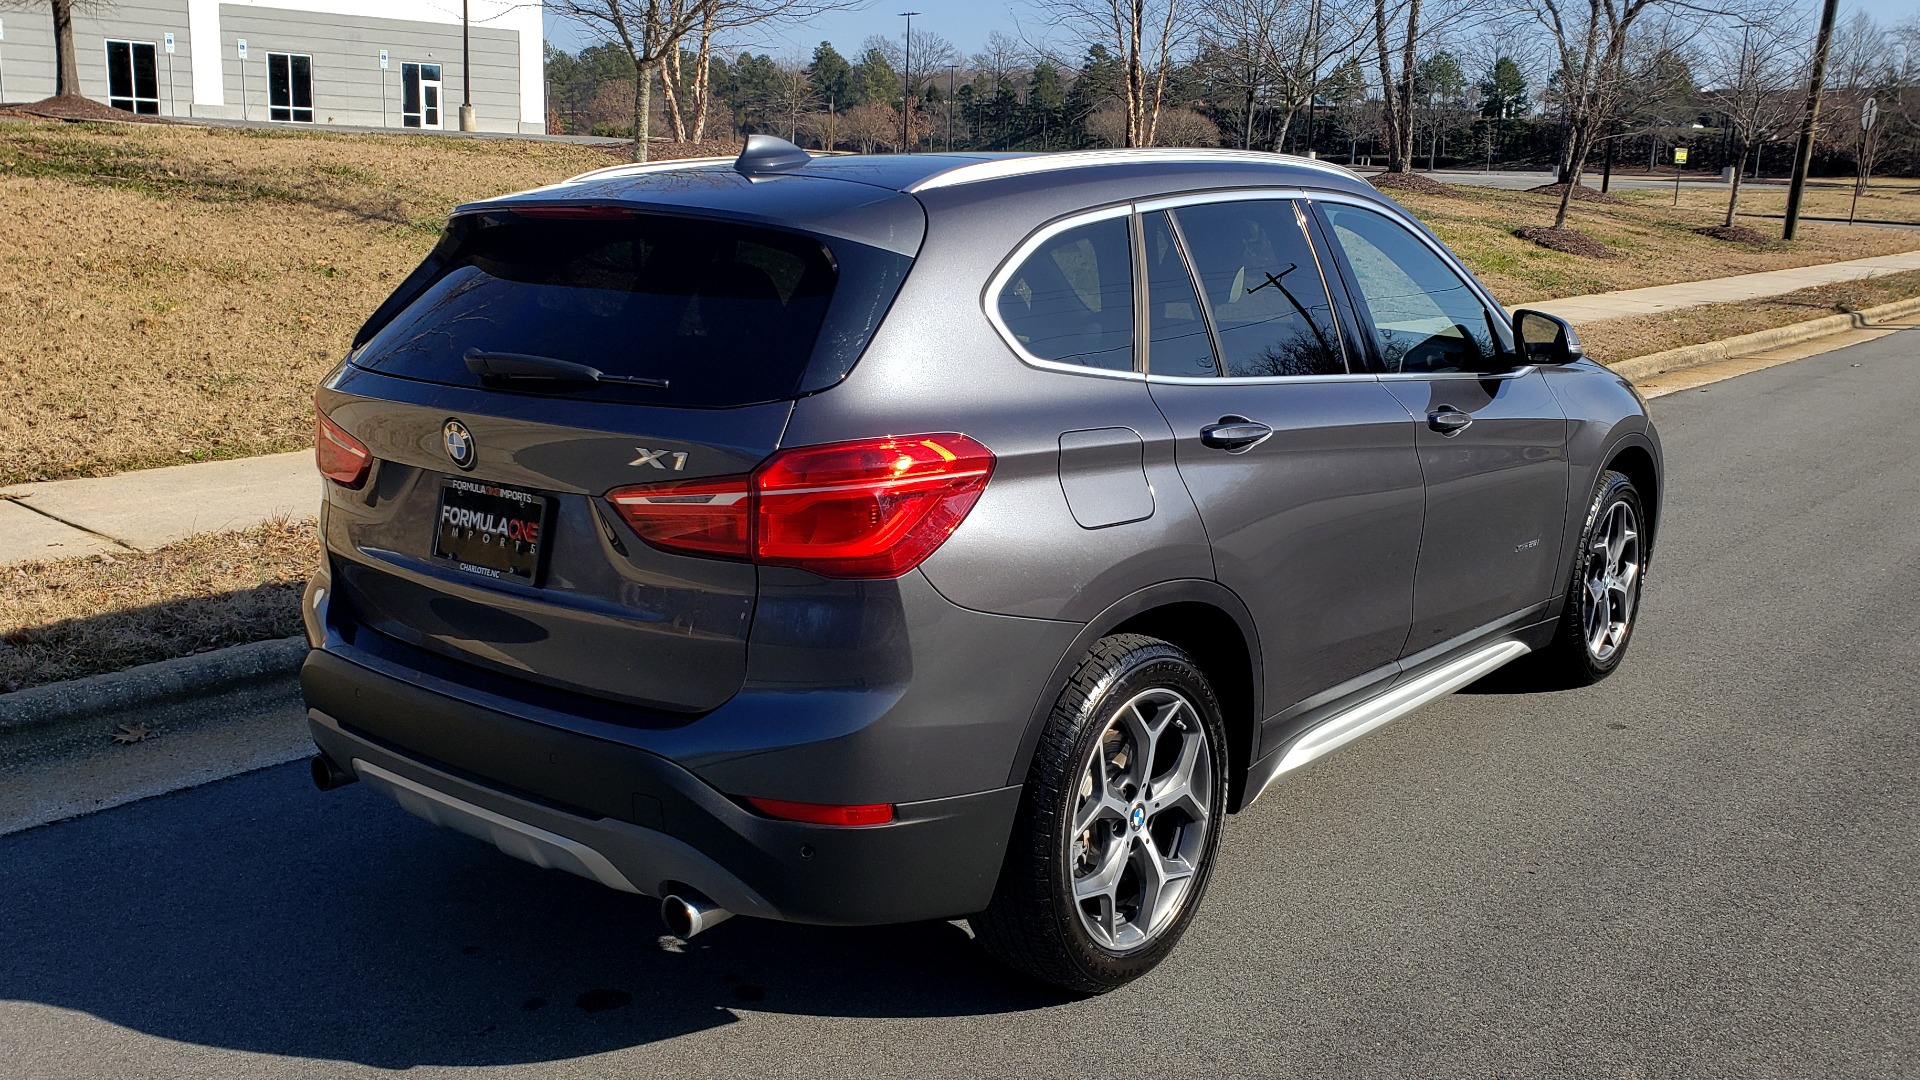 Used 2017 BMW X1 XDRIVE28I / PREM / TECH / DRVR ASST PLUS / COLD WTHR / REARVIEW for sale Sold at Formula Imports in Charlotte NC 28227 6